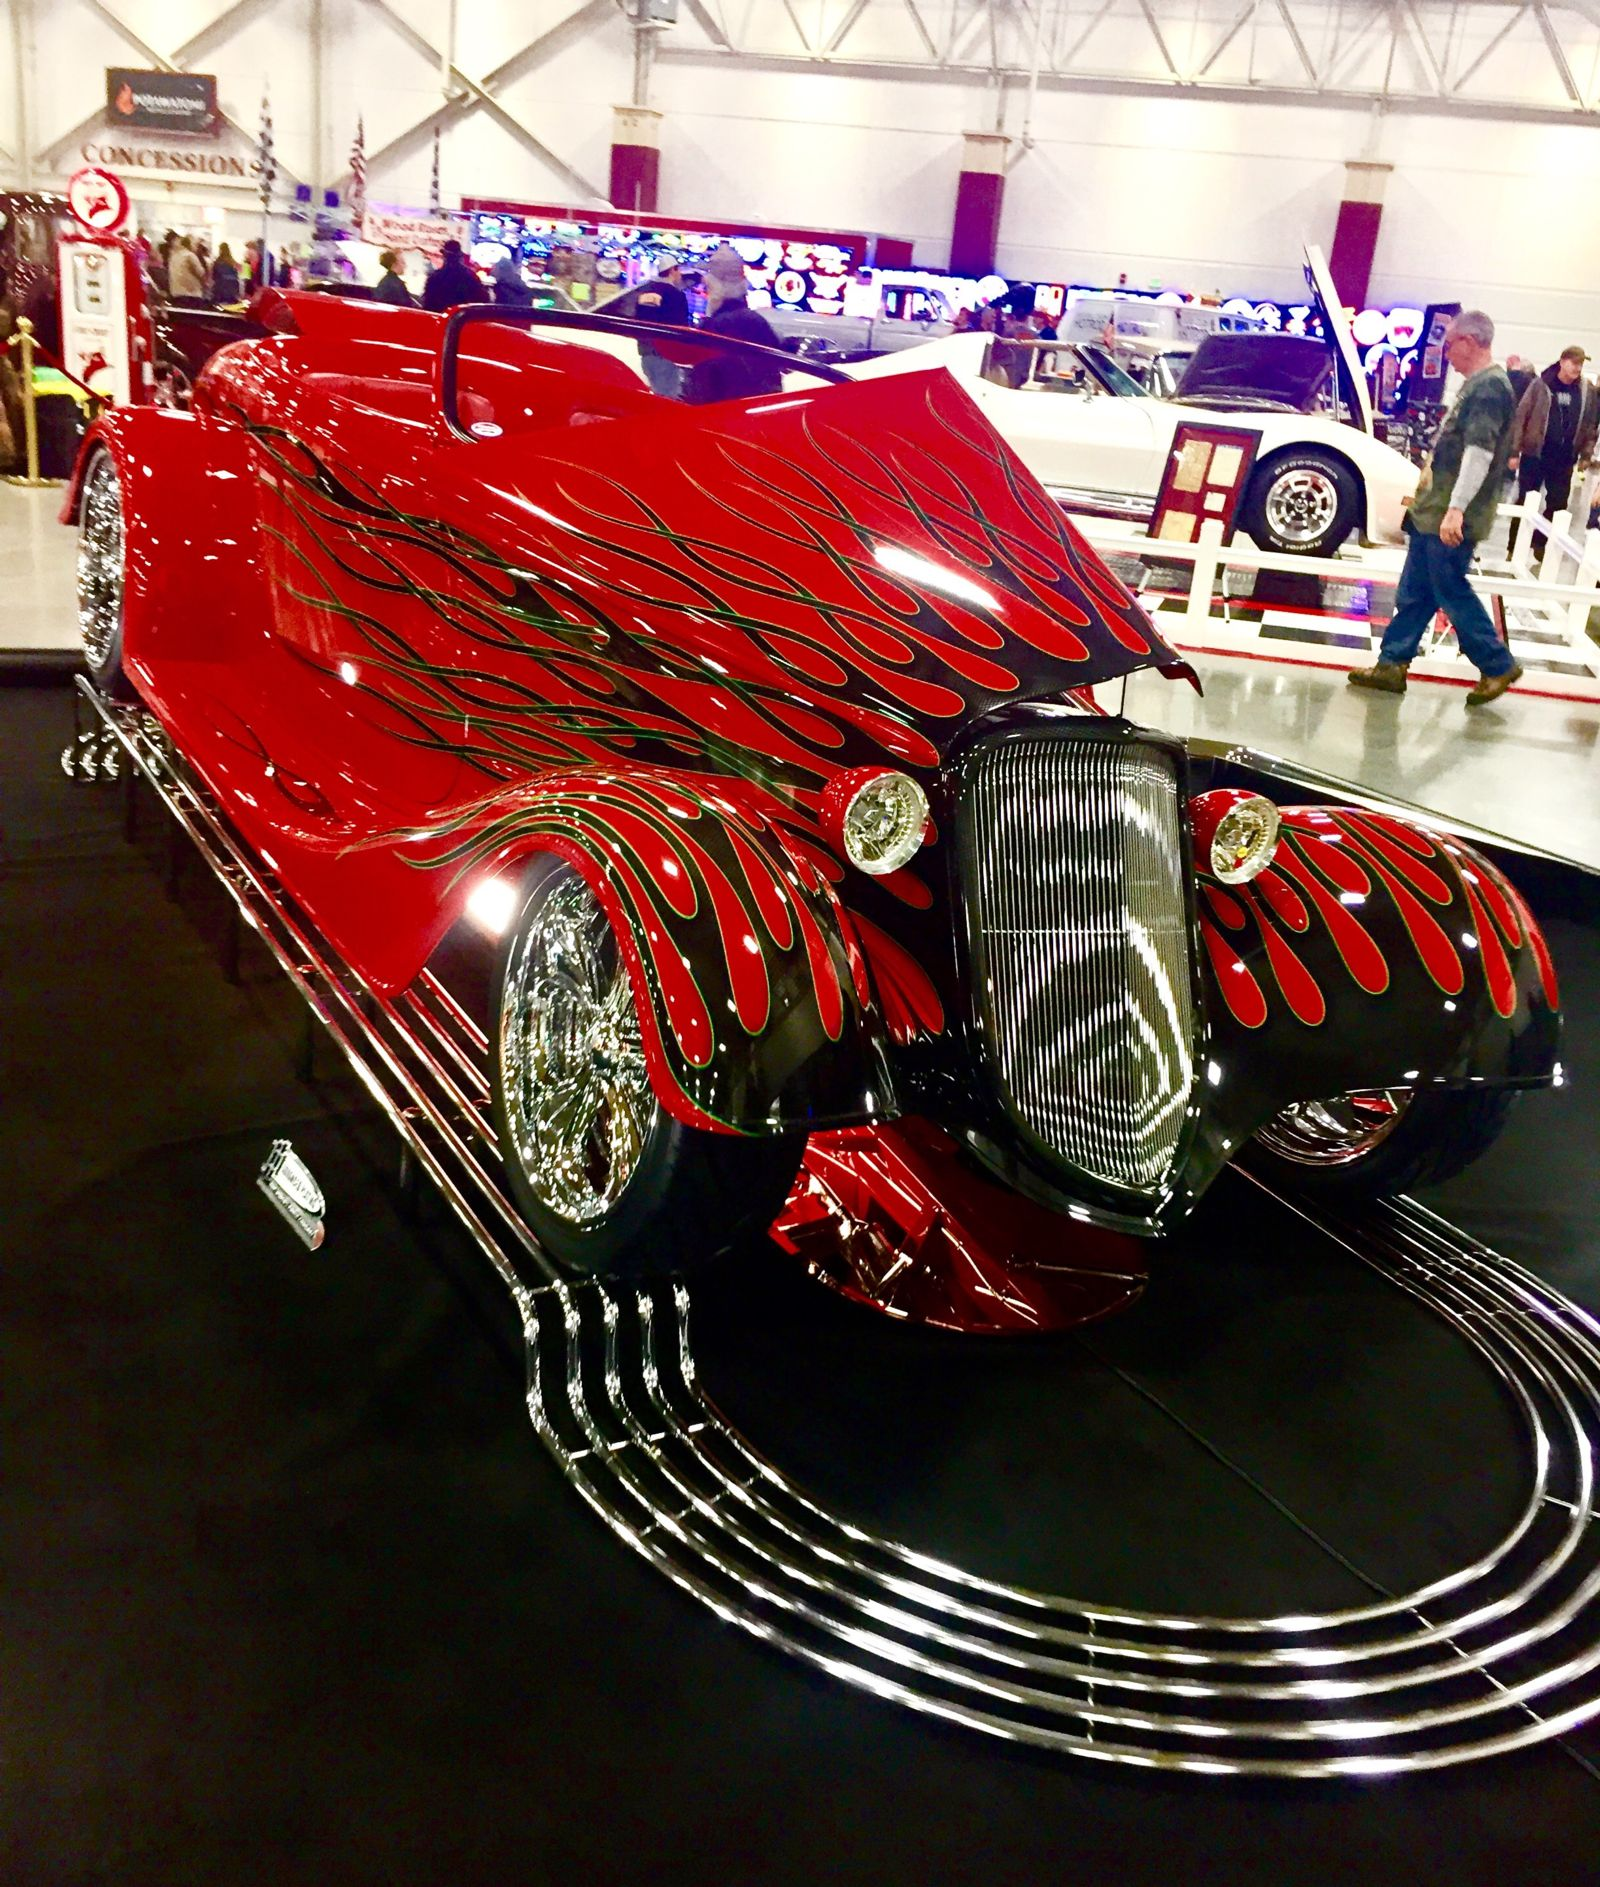 Red hotrod at World of Wheels event